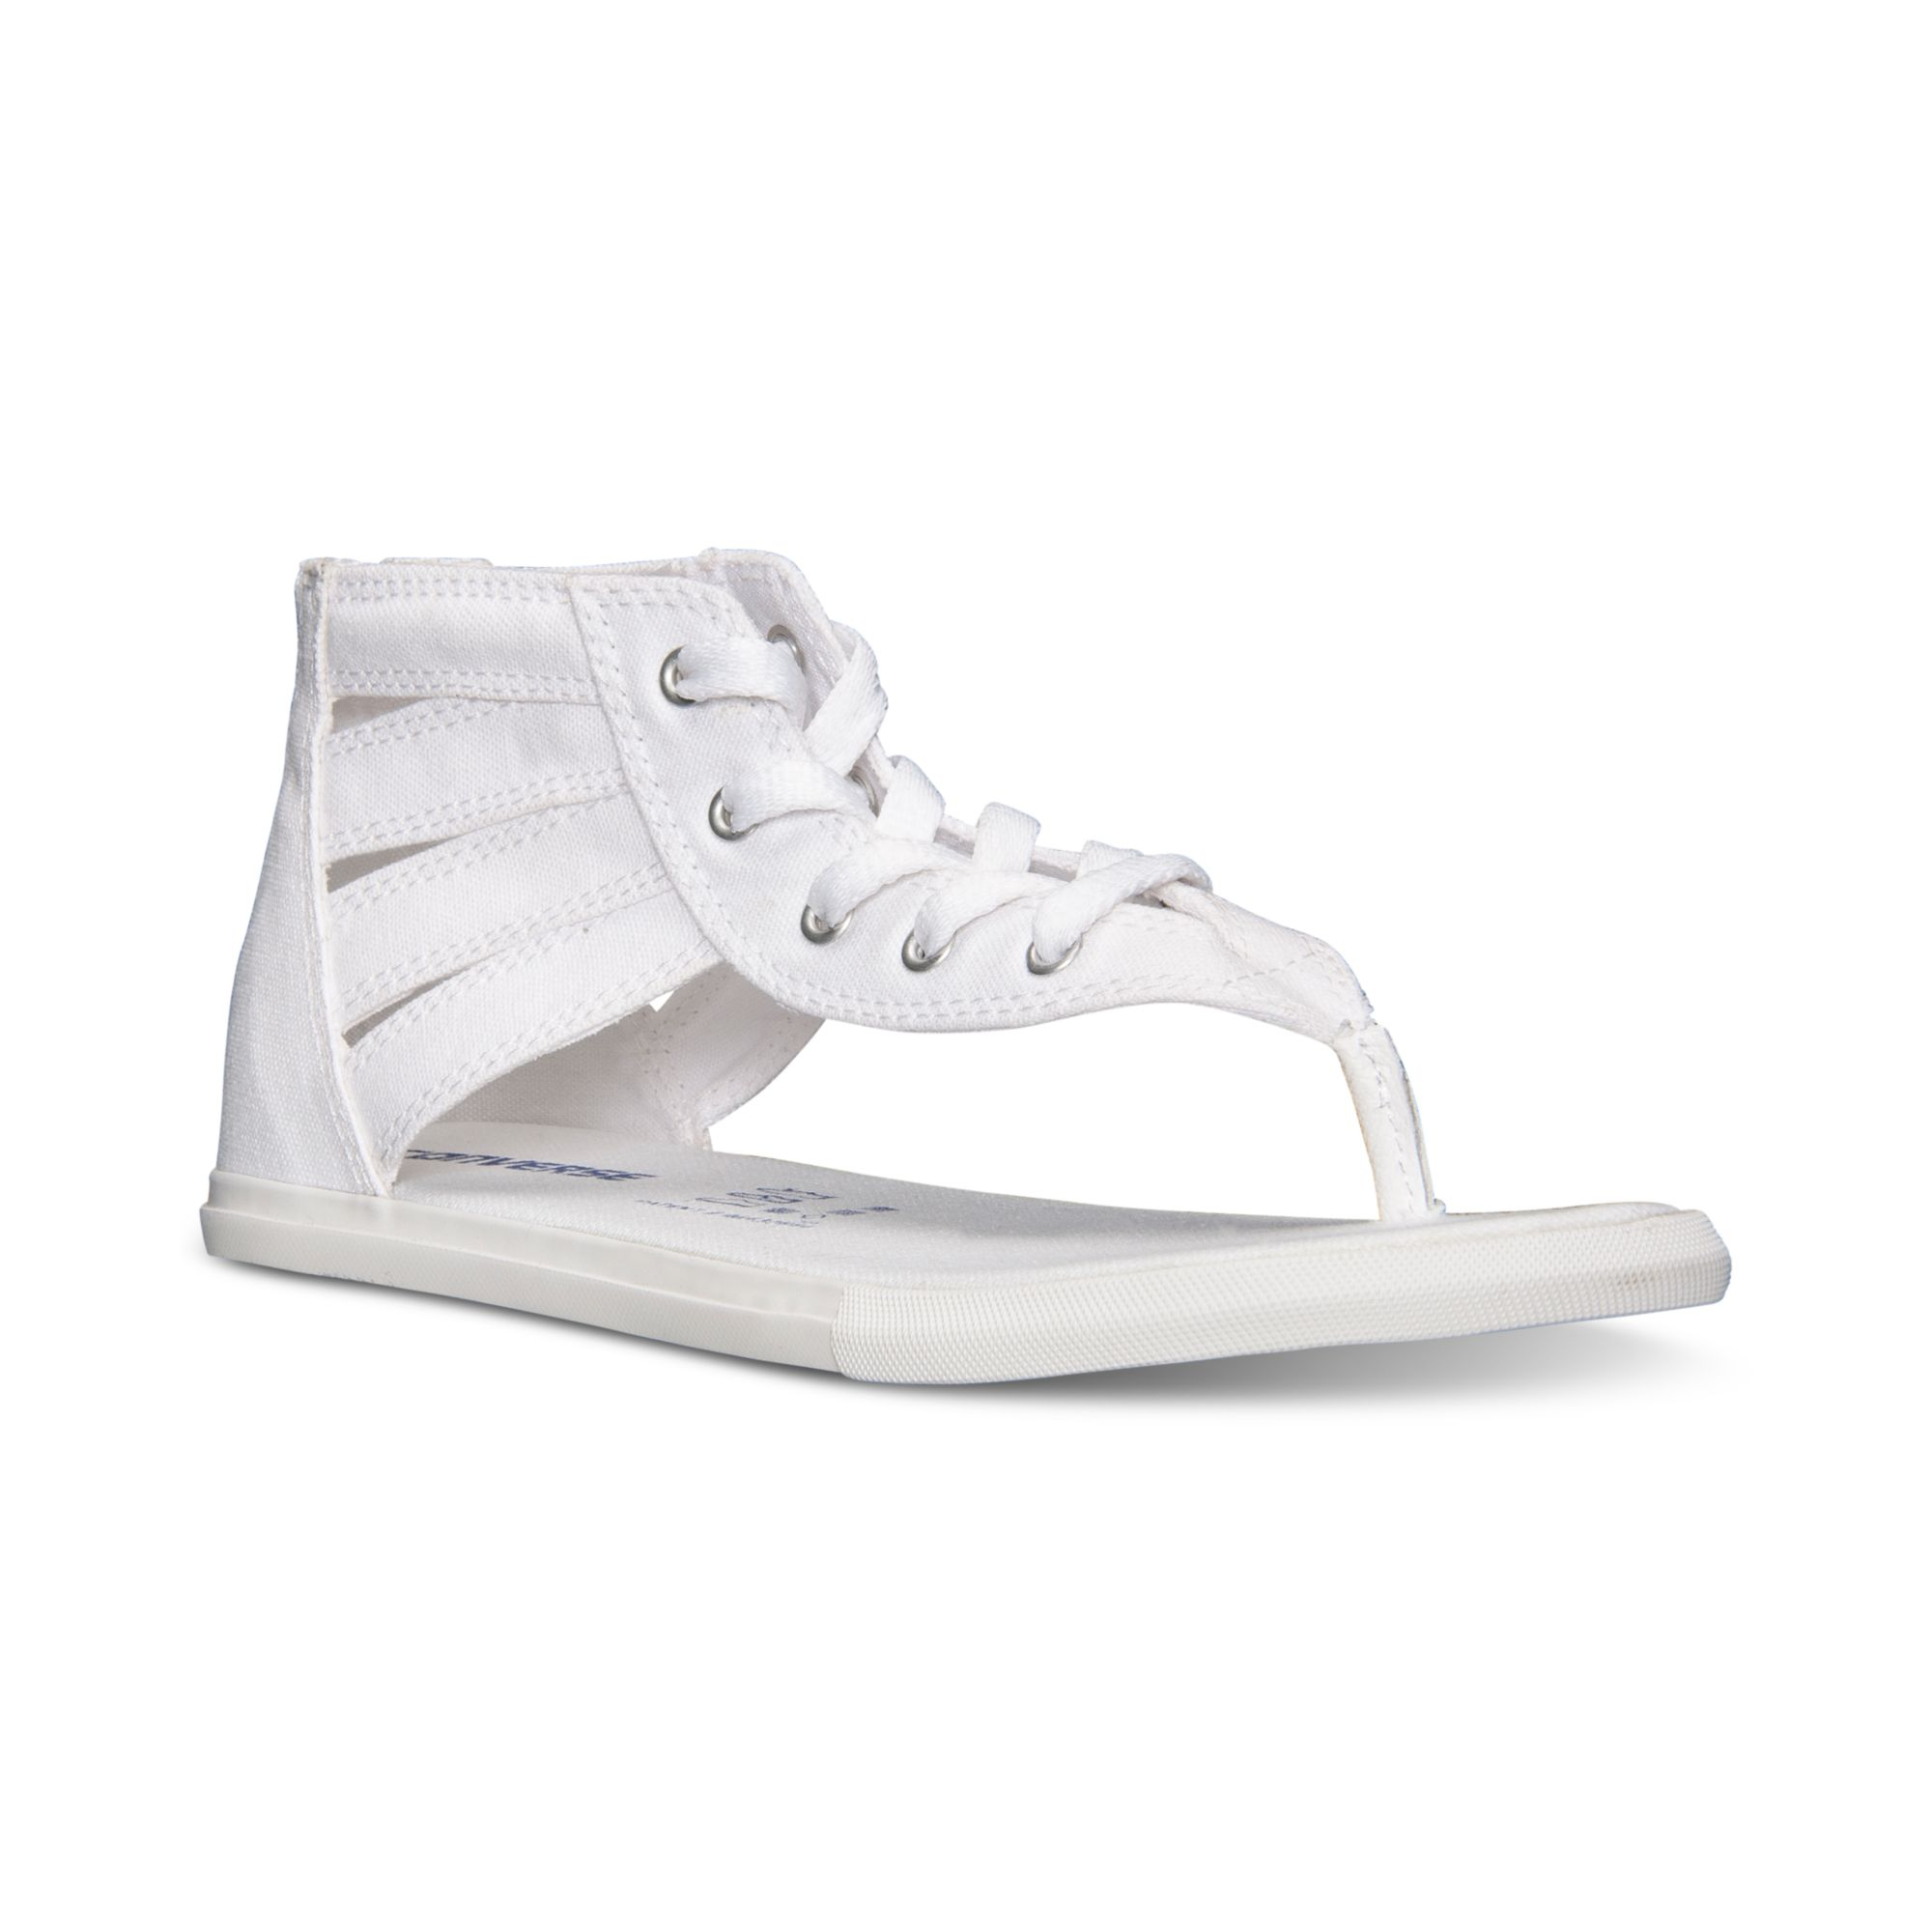 Lyst - Converse Women s Chuck Taylor Gladiator Thong Sandals From Finish  Line in White 2b23906b6